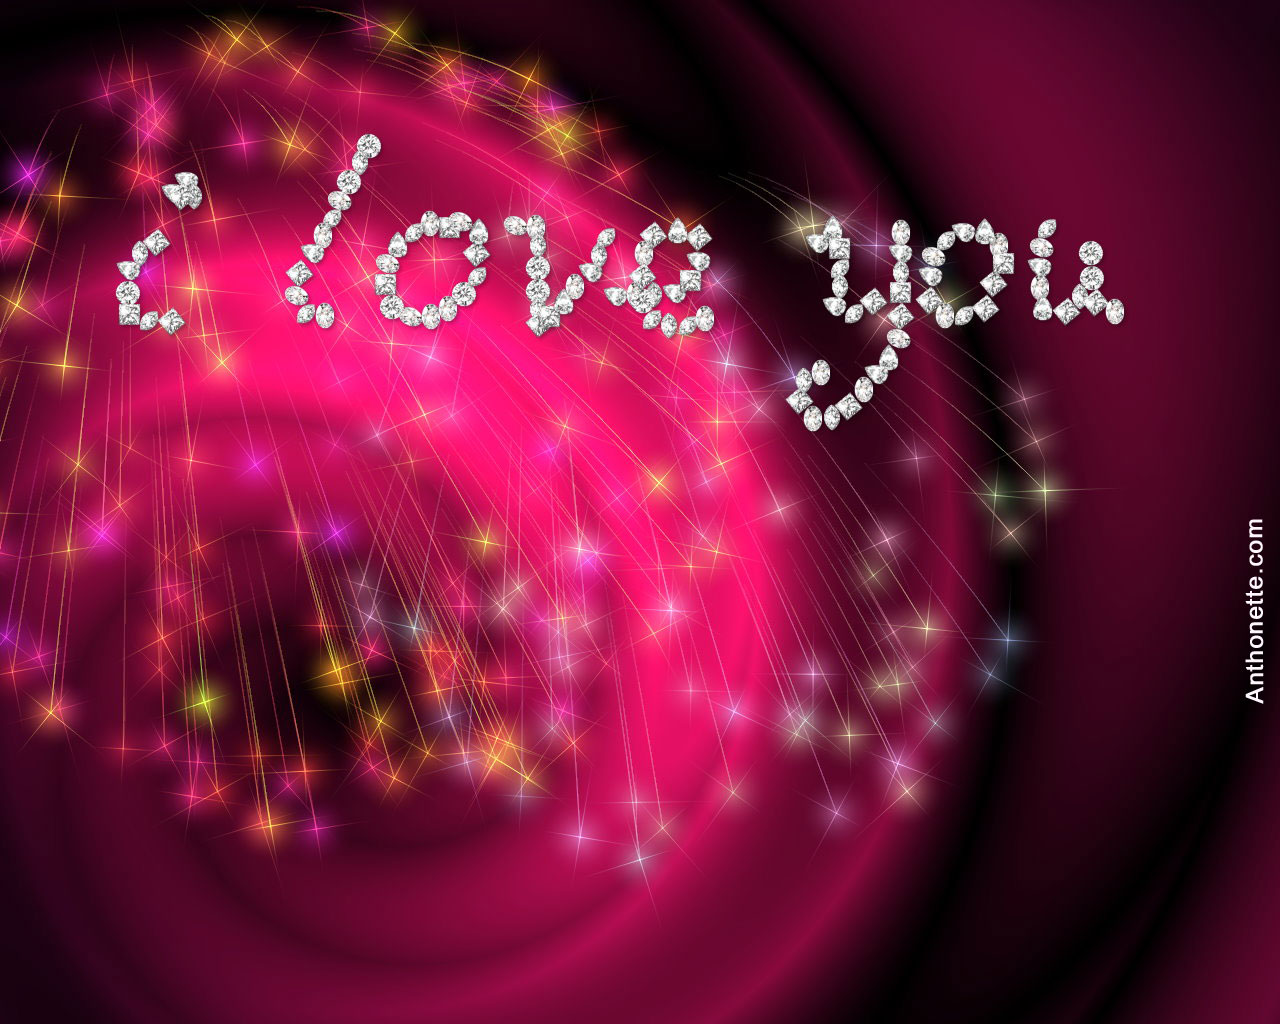 Free Love Images For Iphone 4 HD Wallpapers